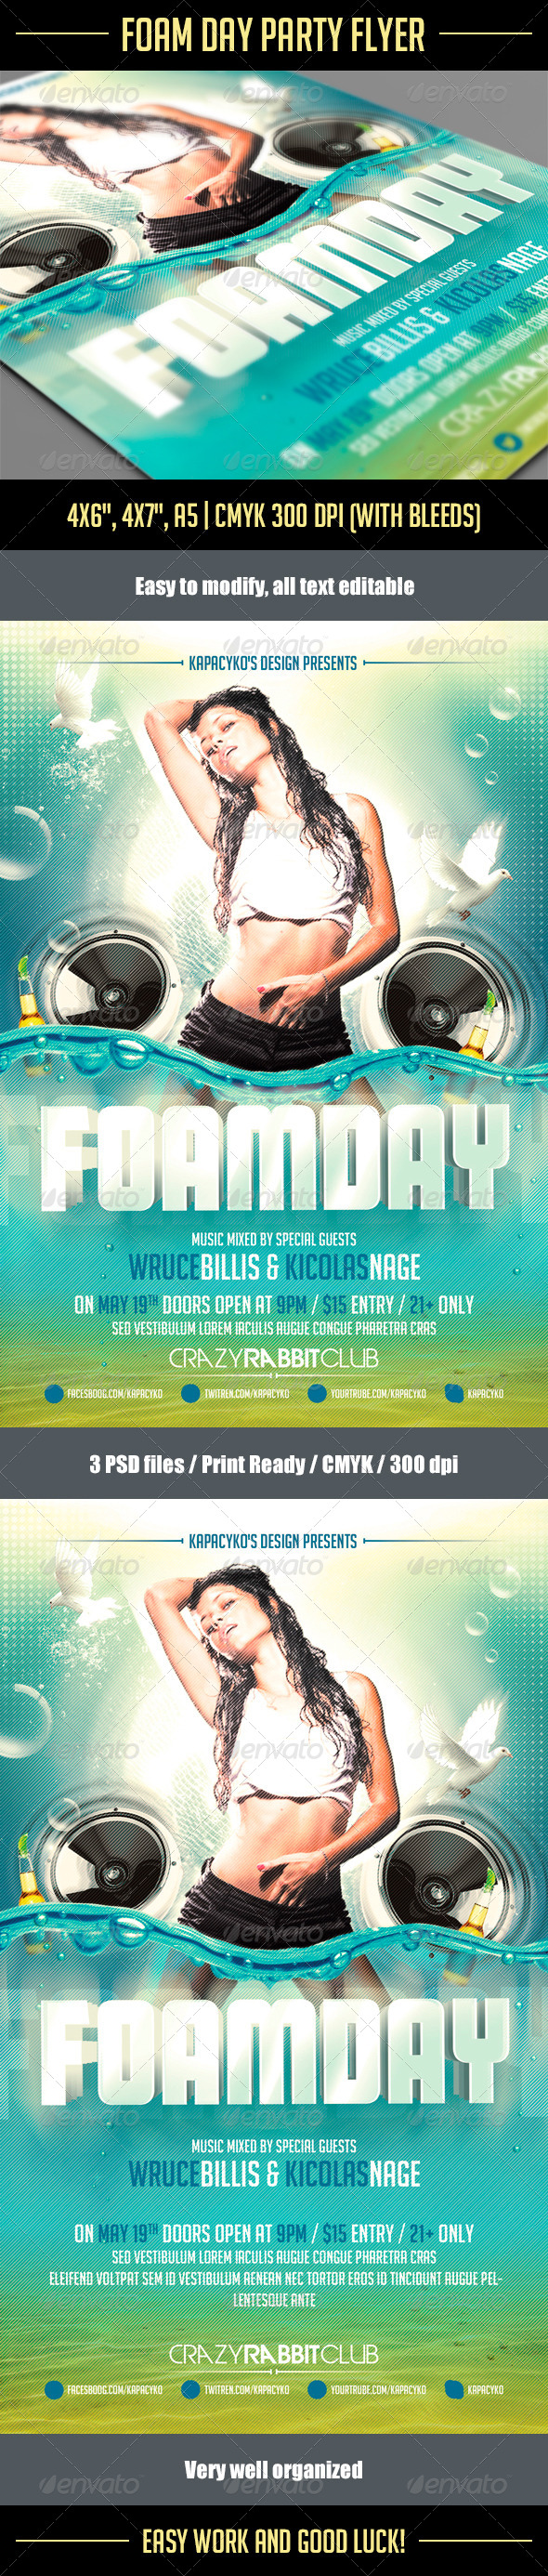 Foam Day Party Flyer - Holidays Events